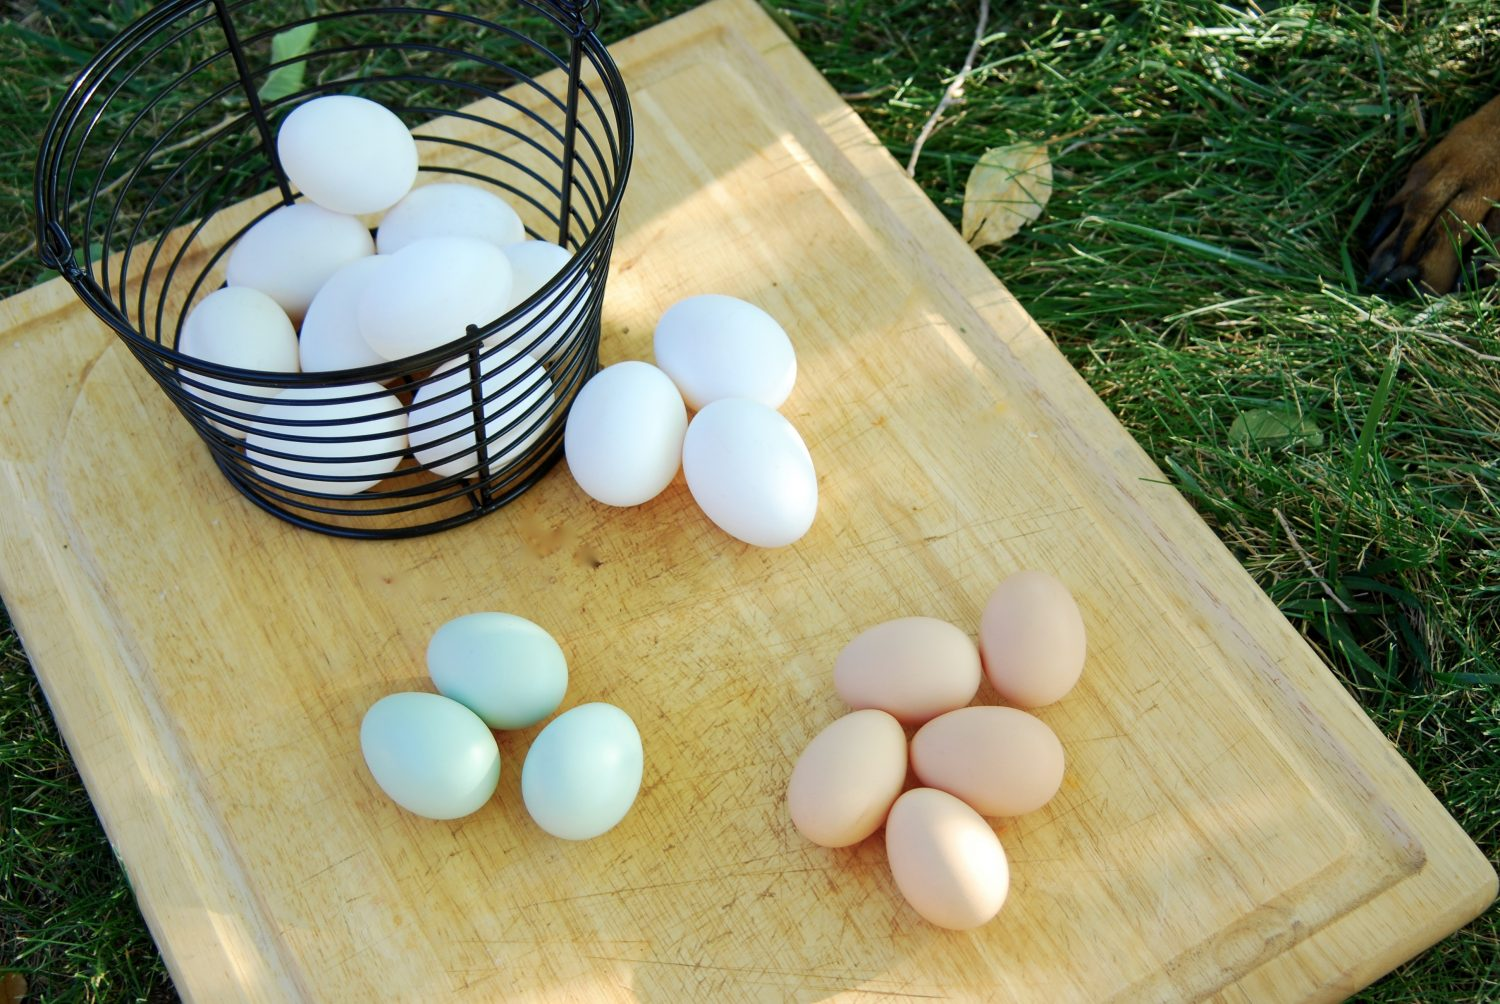 Top view of three groups of eggs on a cutting board next to a basket of eggs.